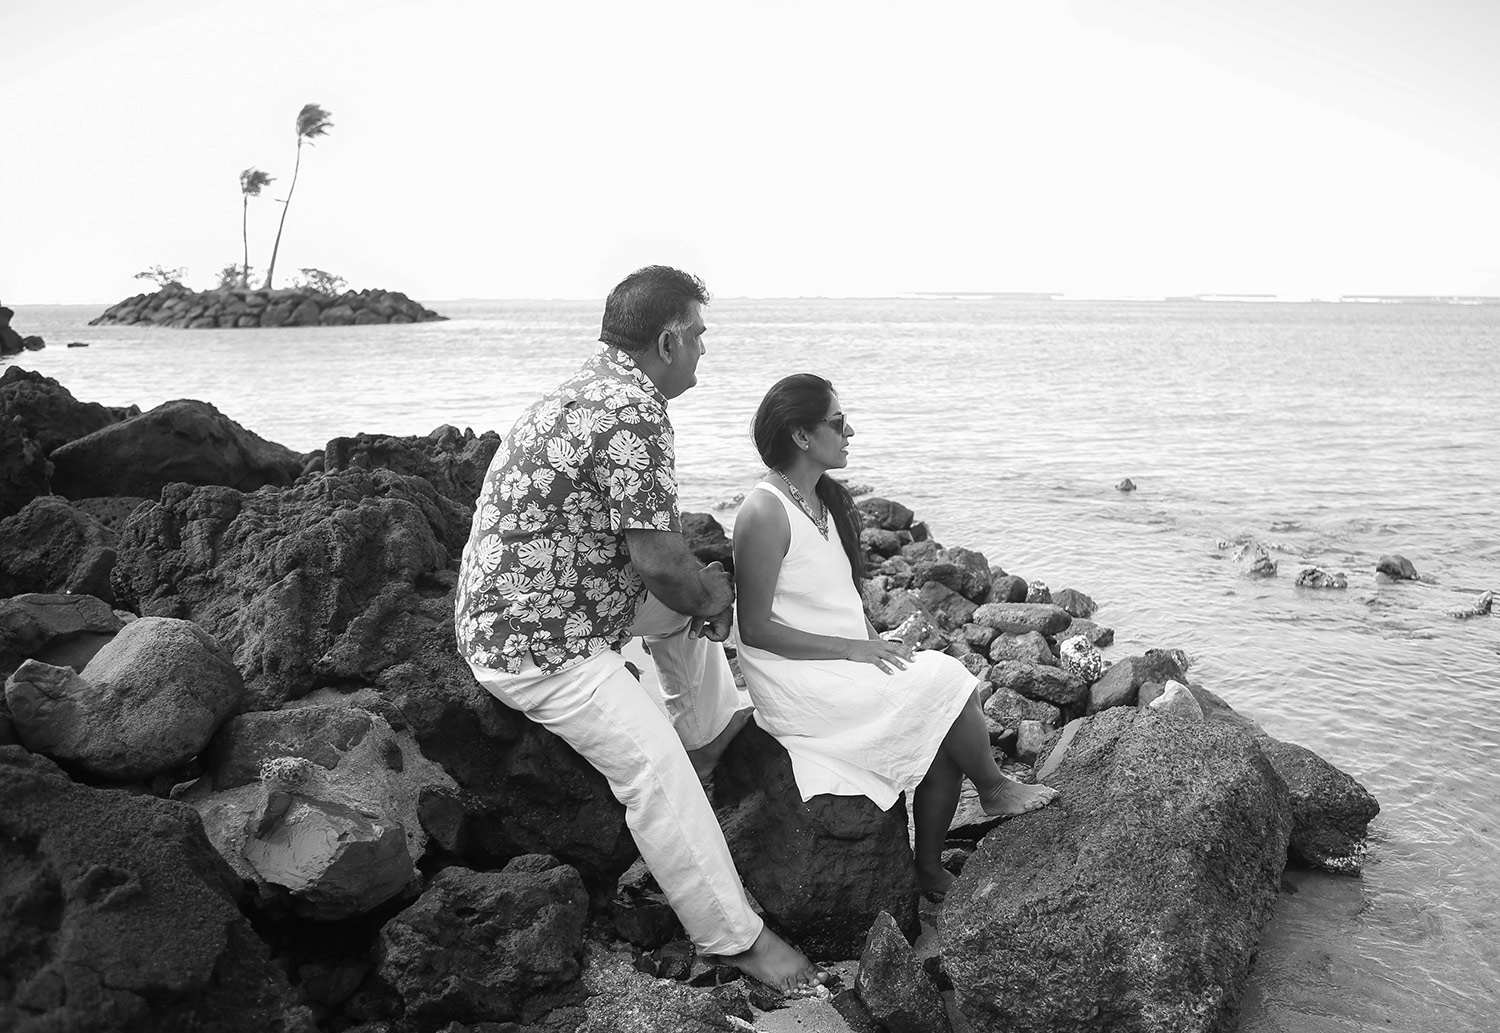 family-photo-session-Oahu-vermani.jpg